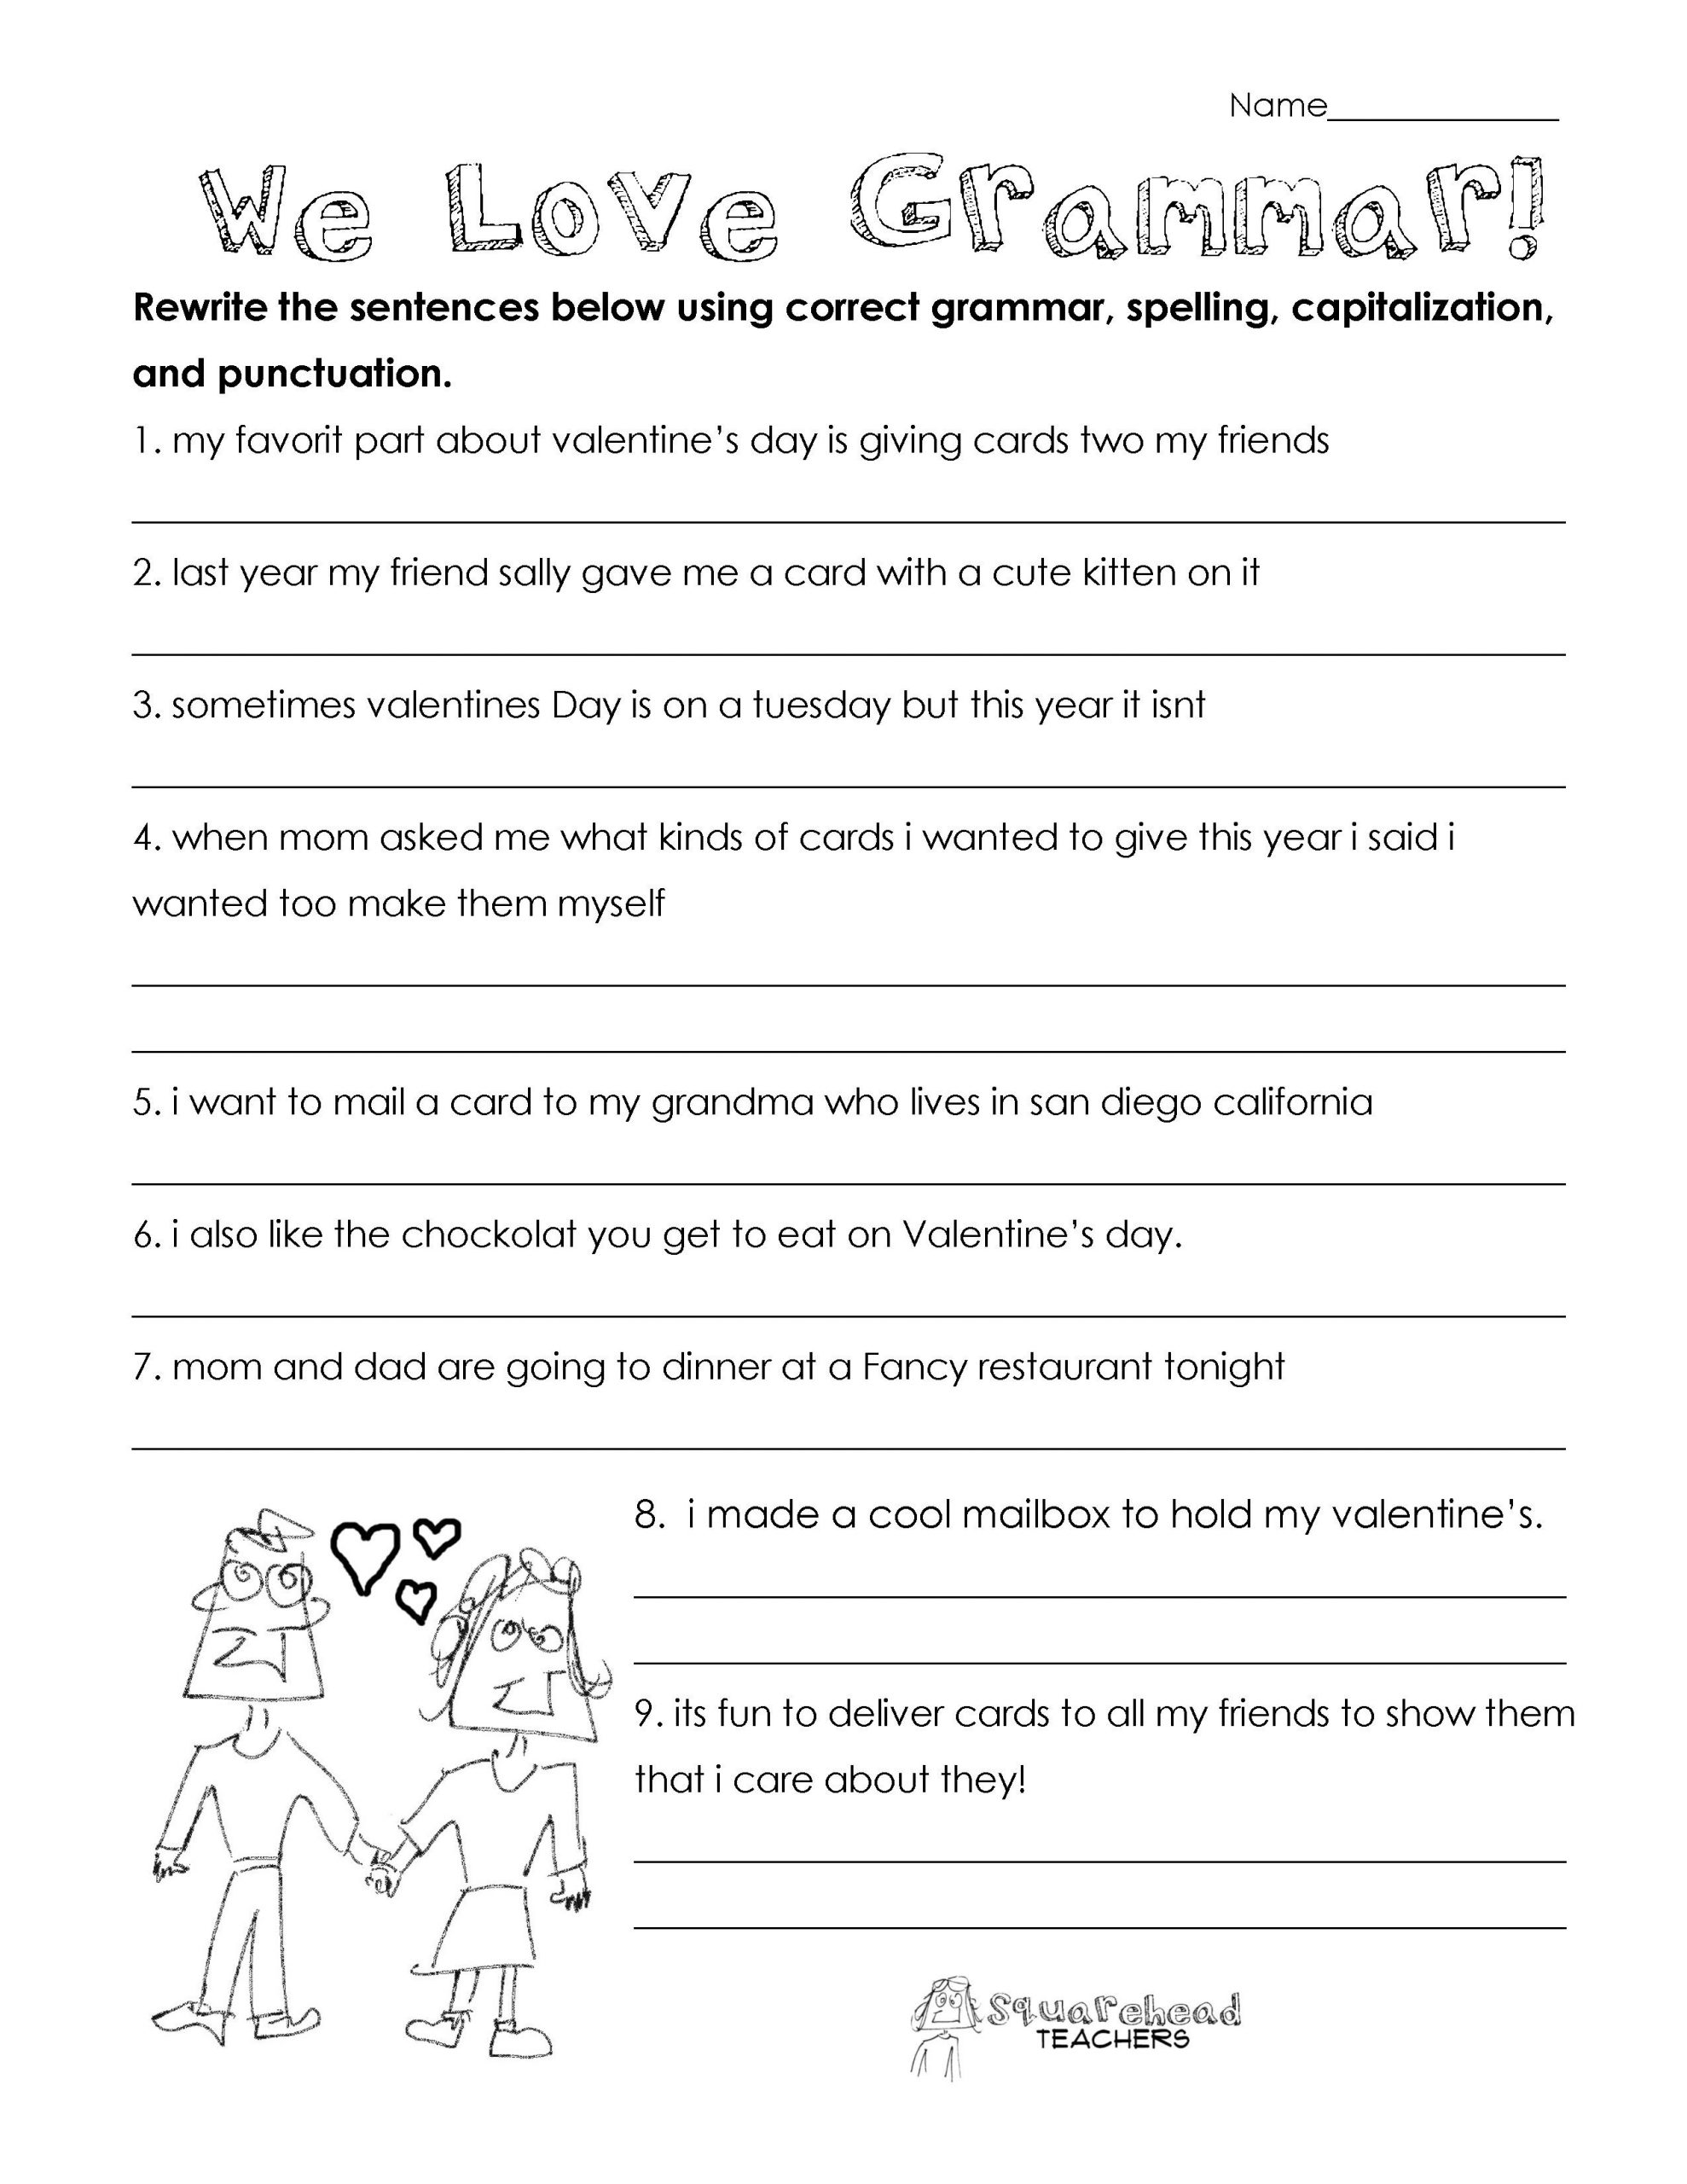 Grammar 3rd Grade Worksheets Valentine S Day Grammar Free Worksheet for 3rd Grade and Up